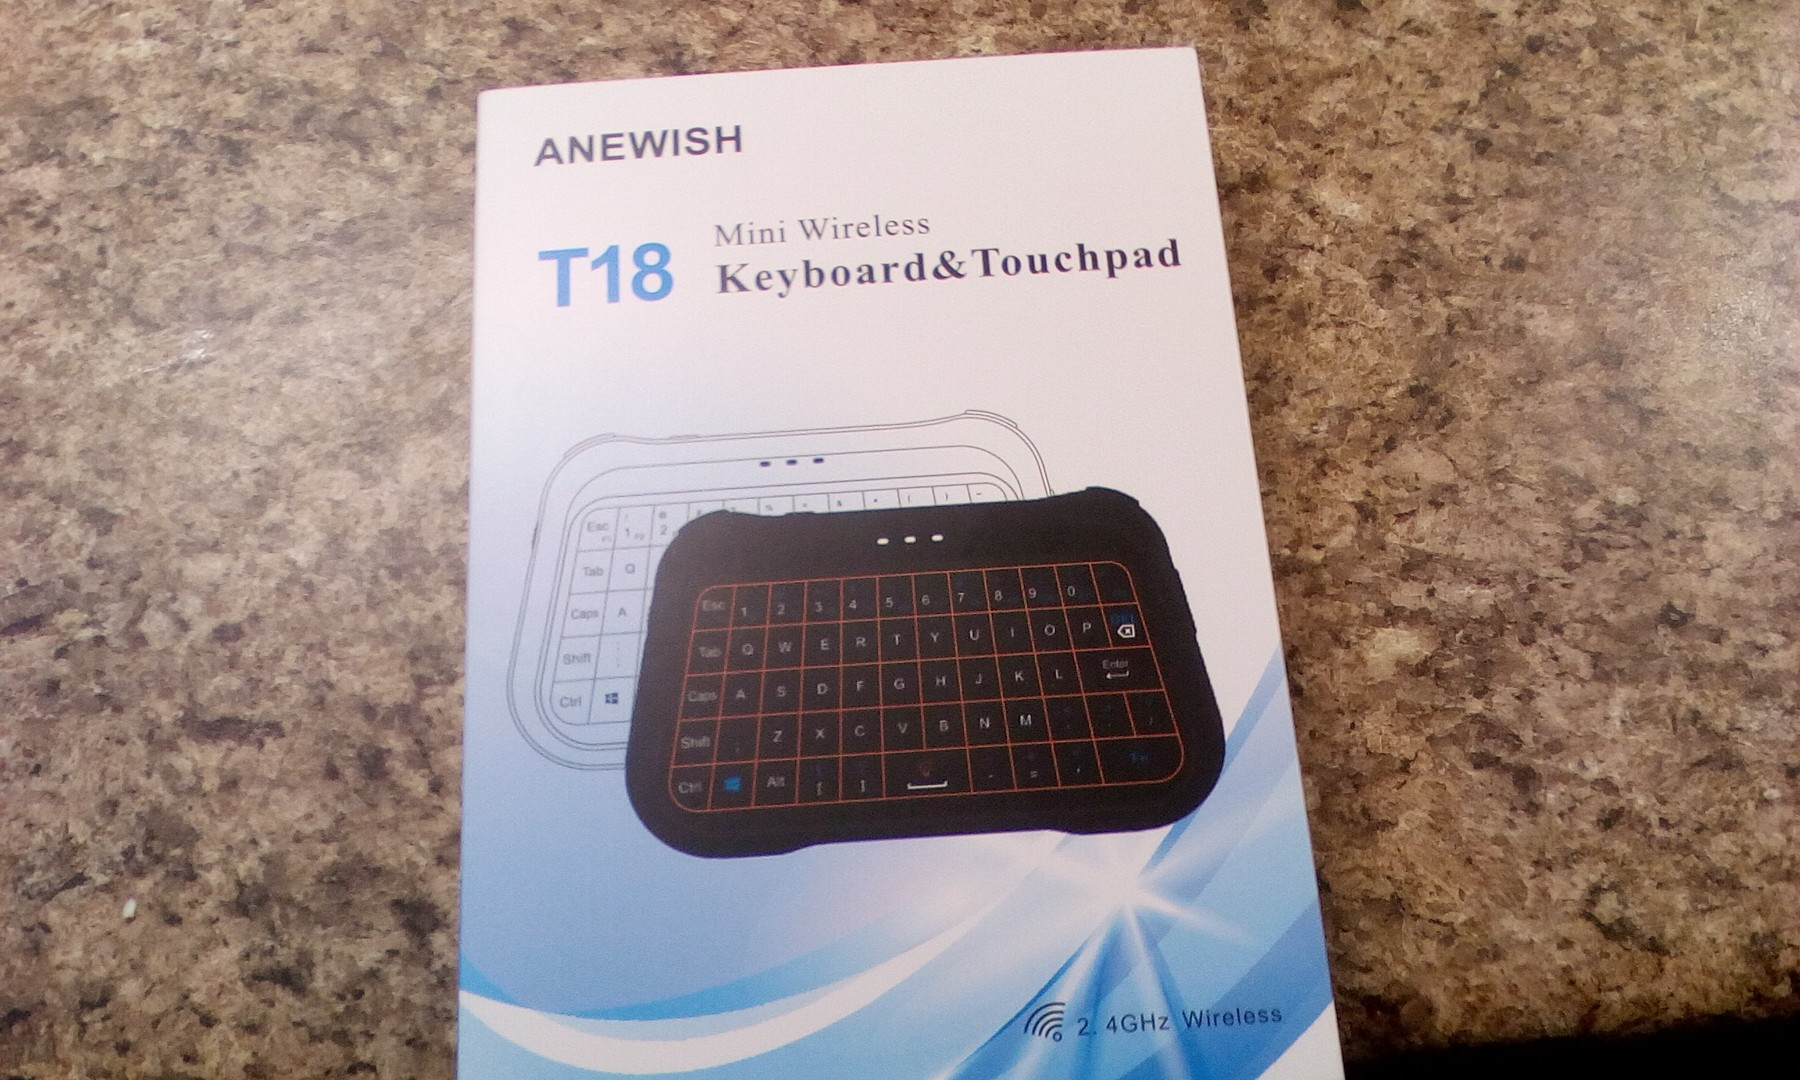 Multi-purpose thumb keyboard/touchpad combo